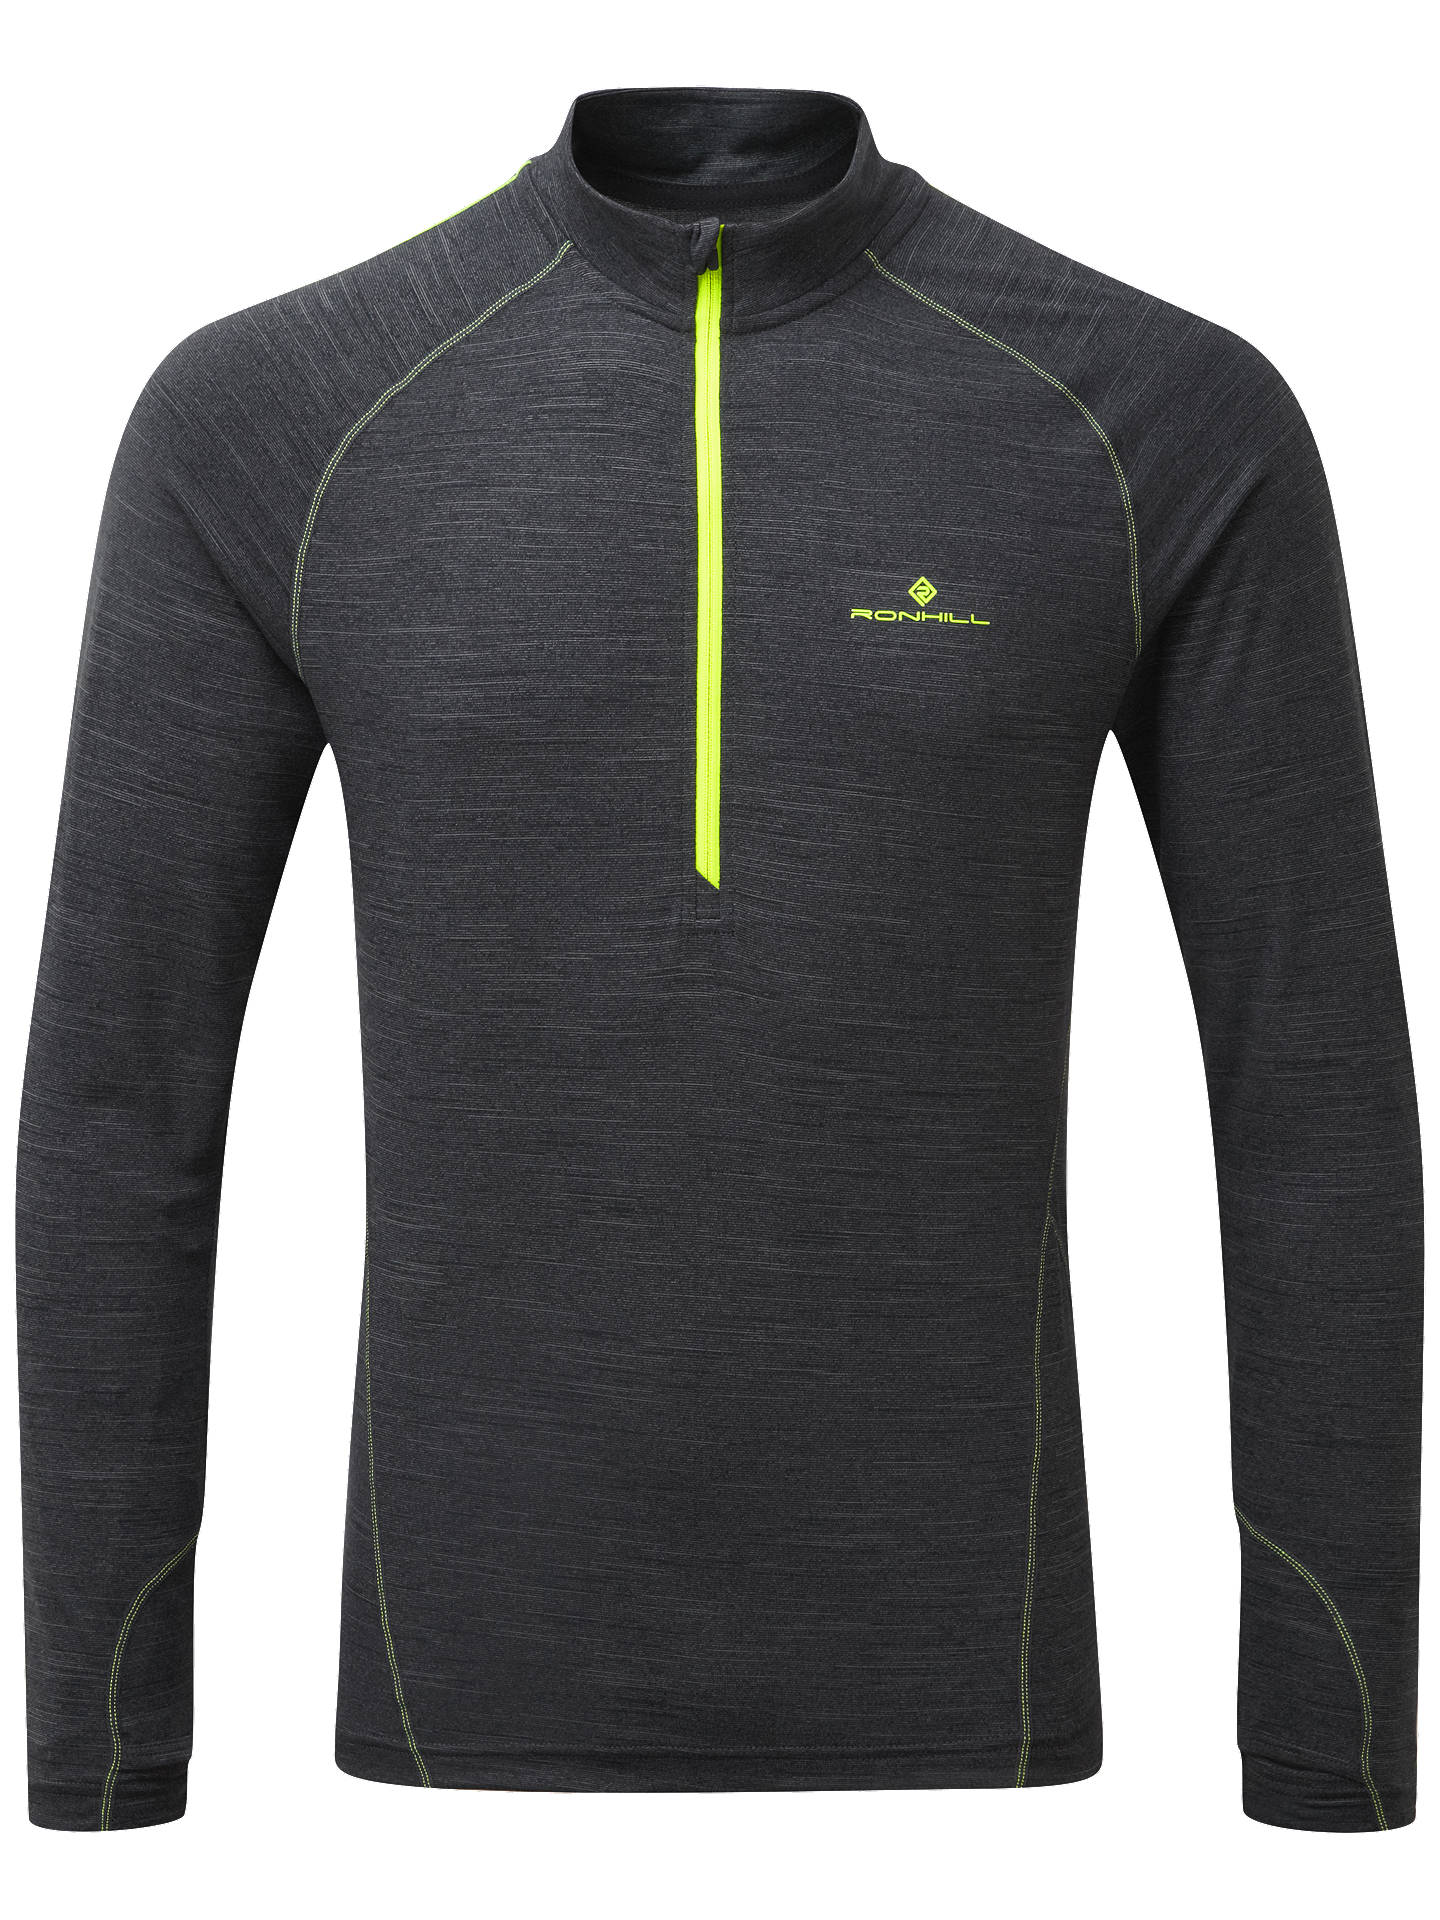 BuyRonhill Stride Thermal 1/2 Zip Long Sleeve Running Top, Charcoal, S Online at johnlewis.com